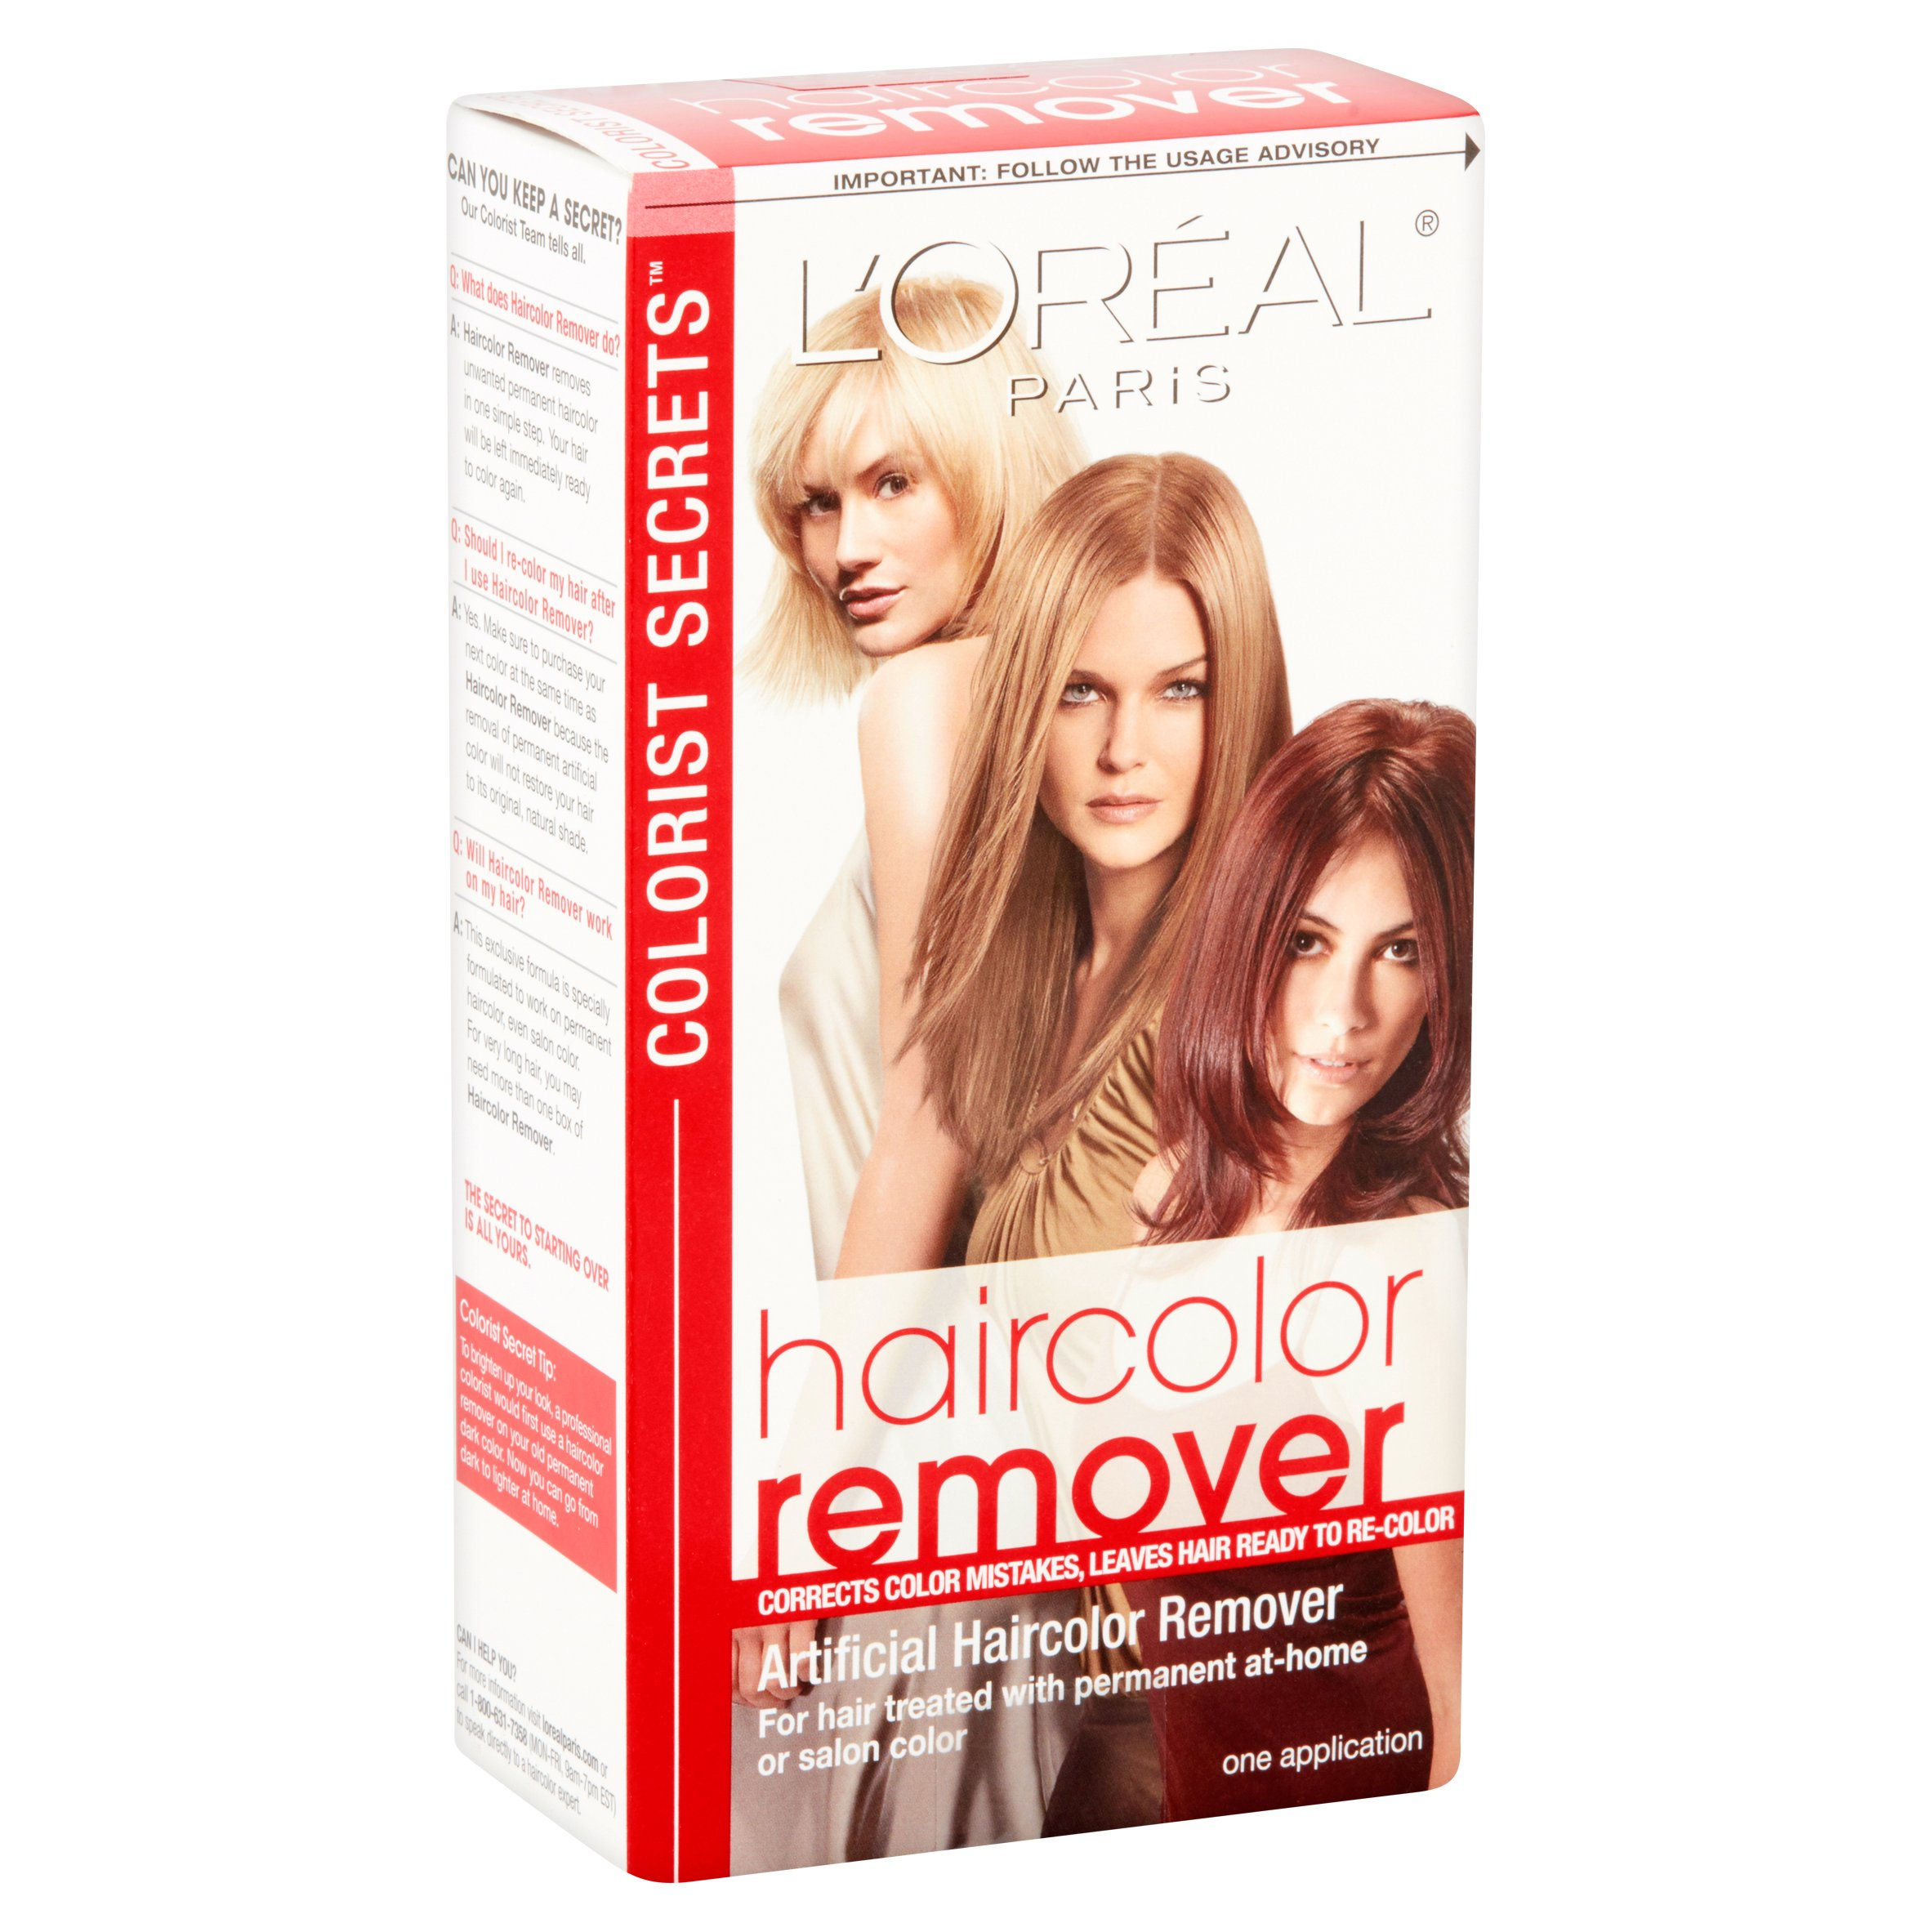 Loreal paris colorist secrets haircolor remover walmart solutioingenieria Choice Image